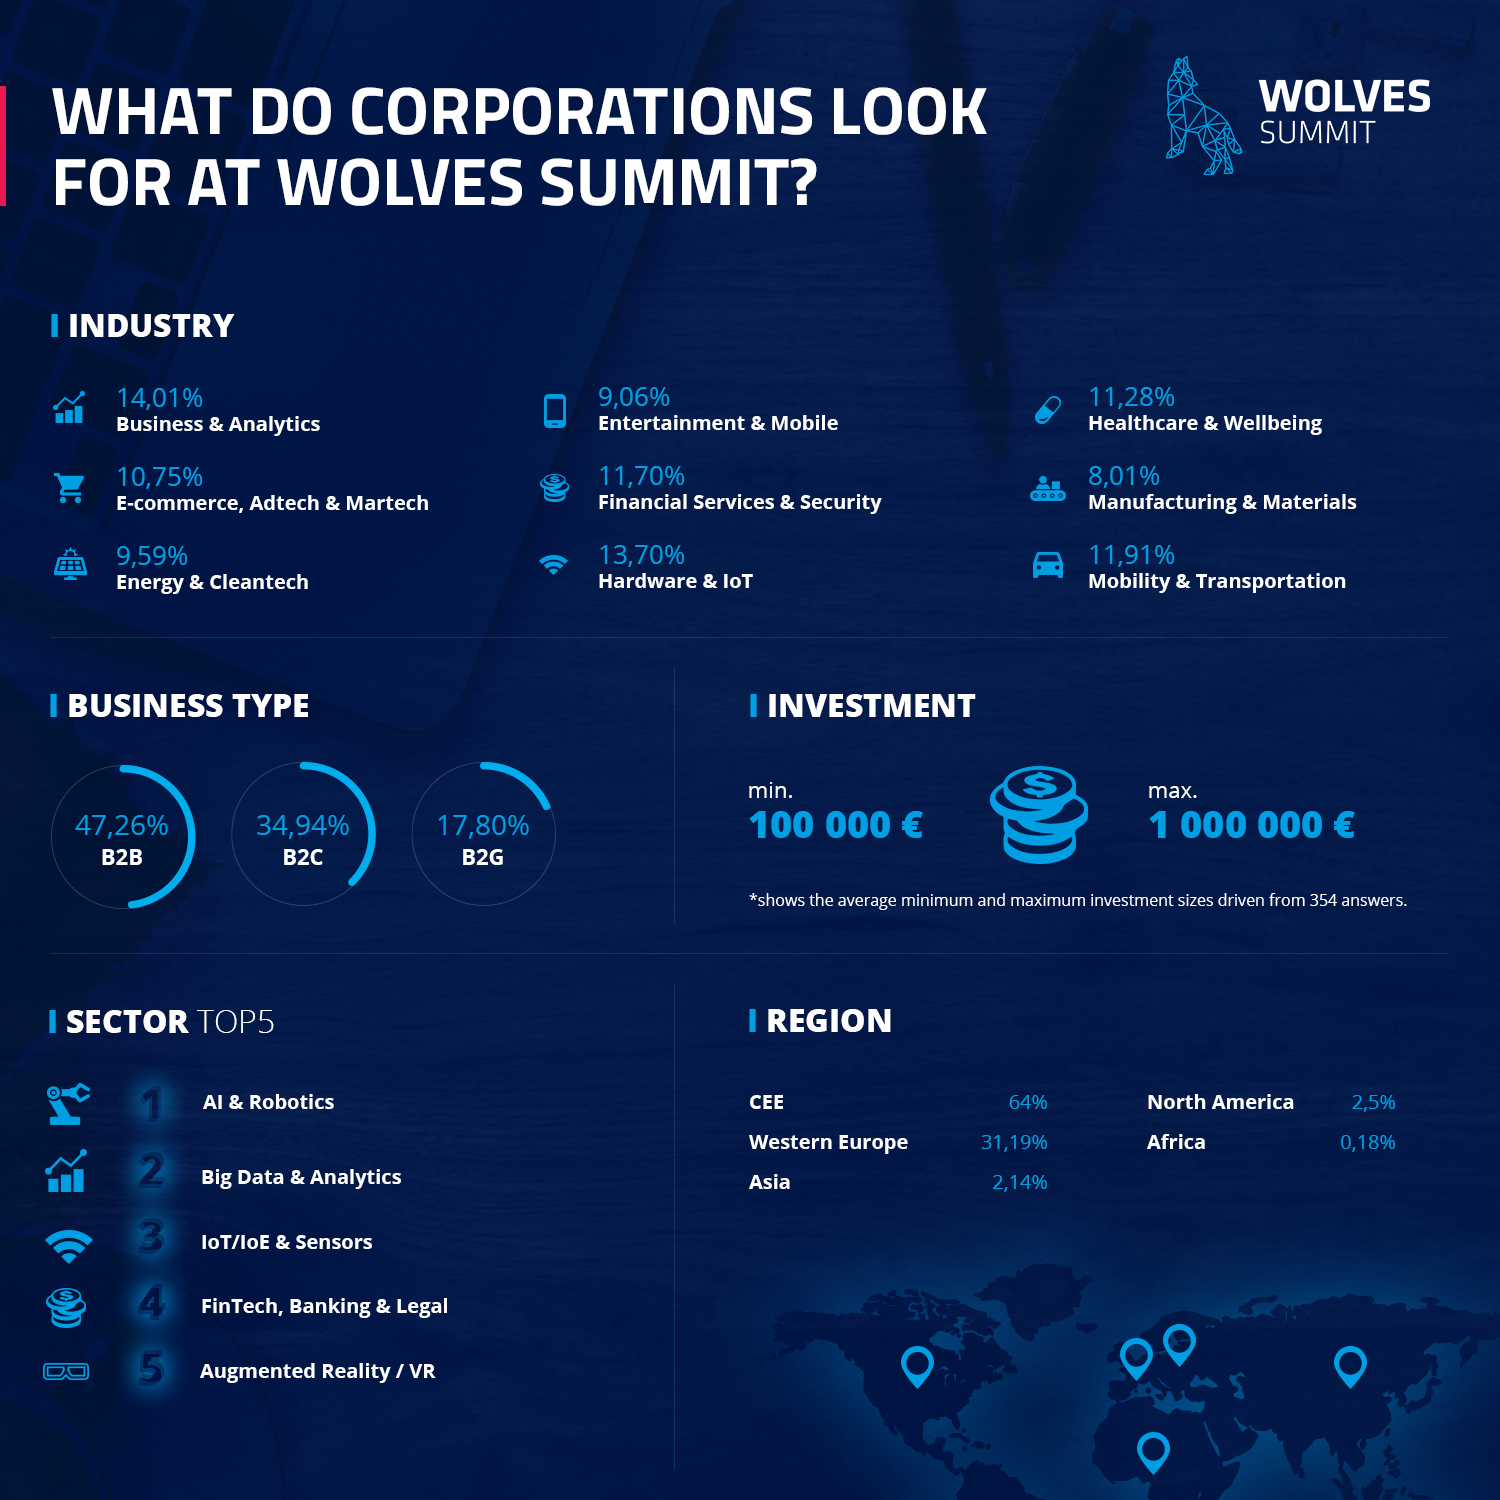 Wolves Summit corporations